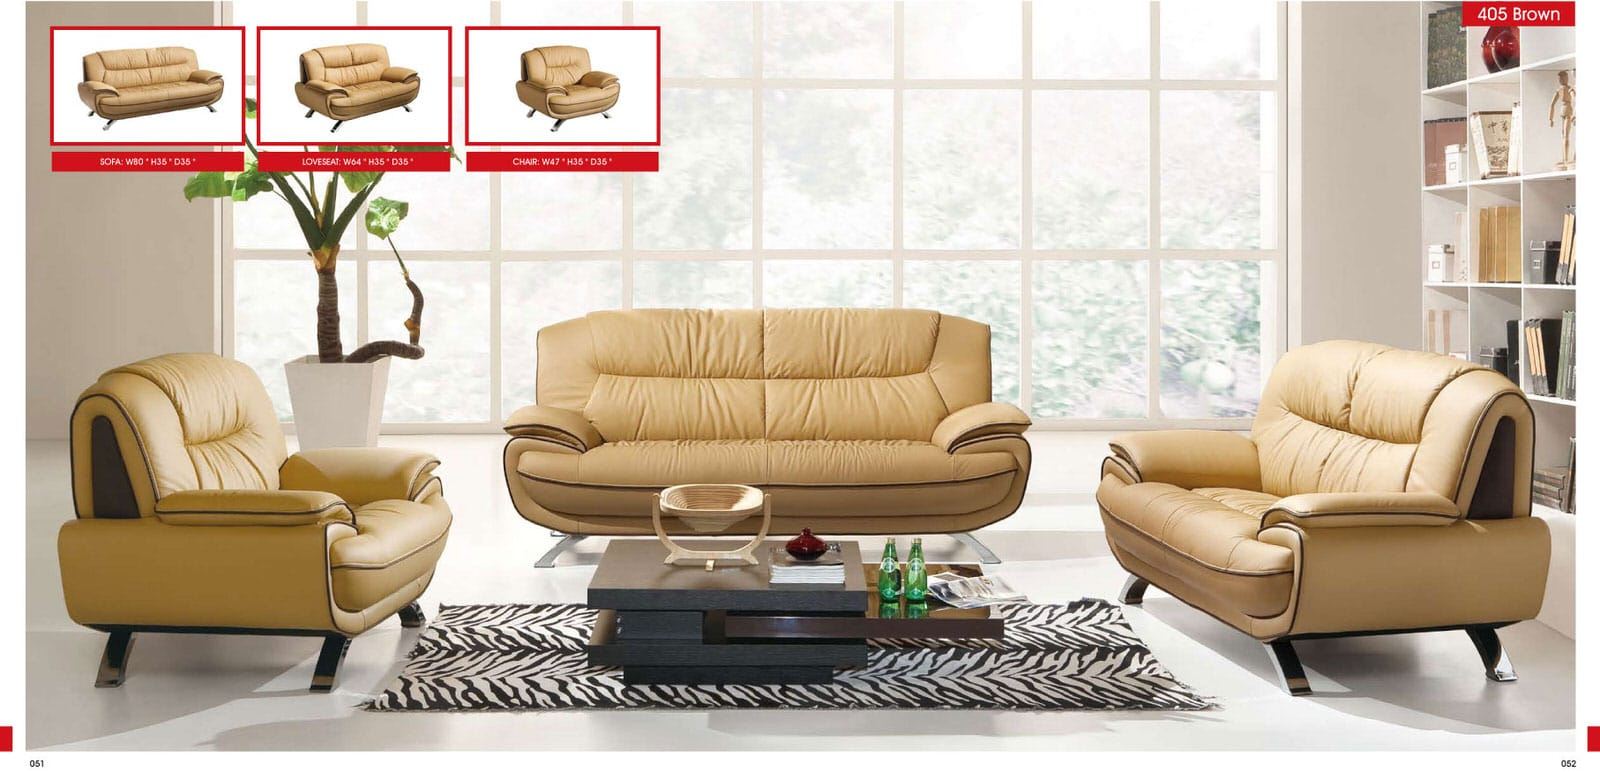 405 brown leather sofa set by esf for Living room sofa